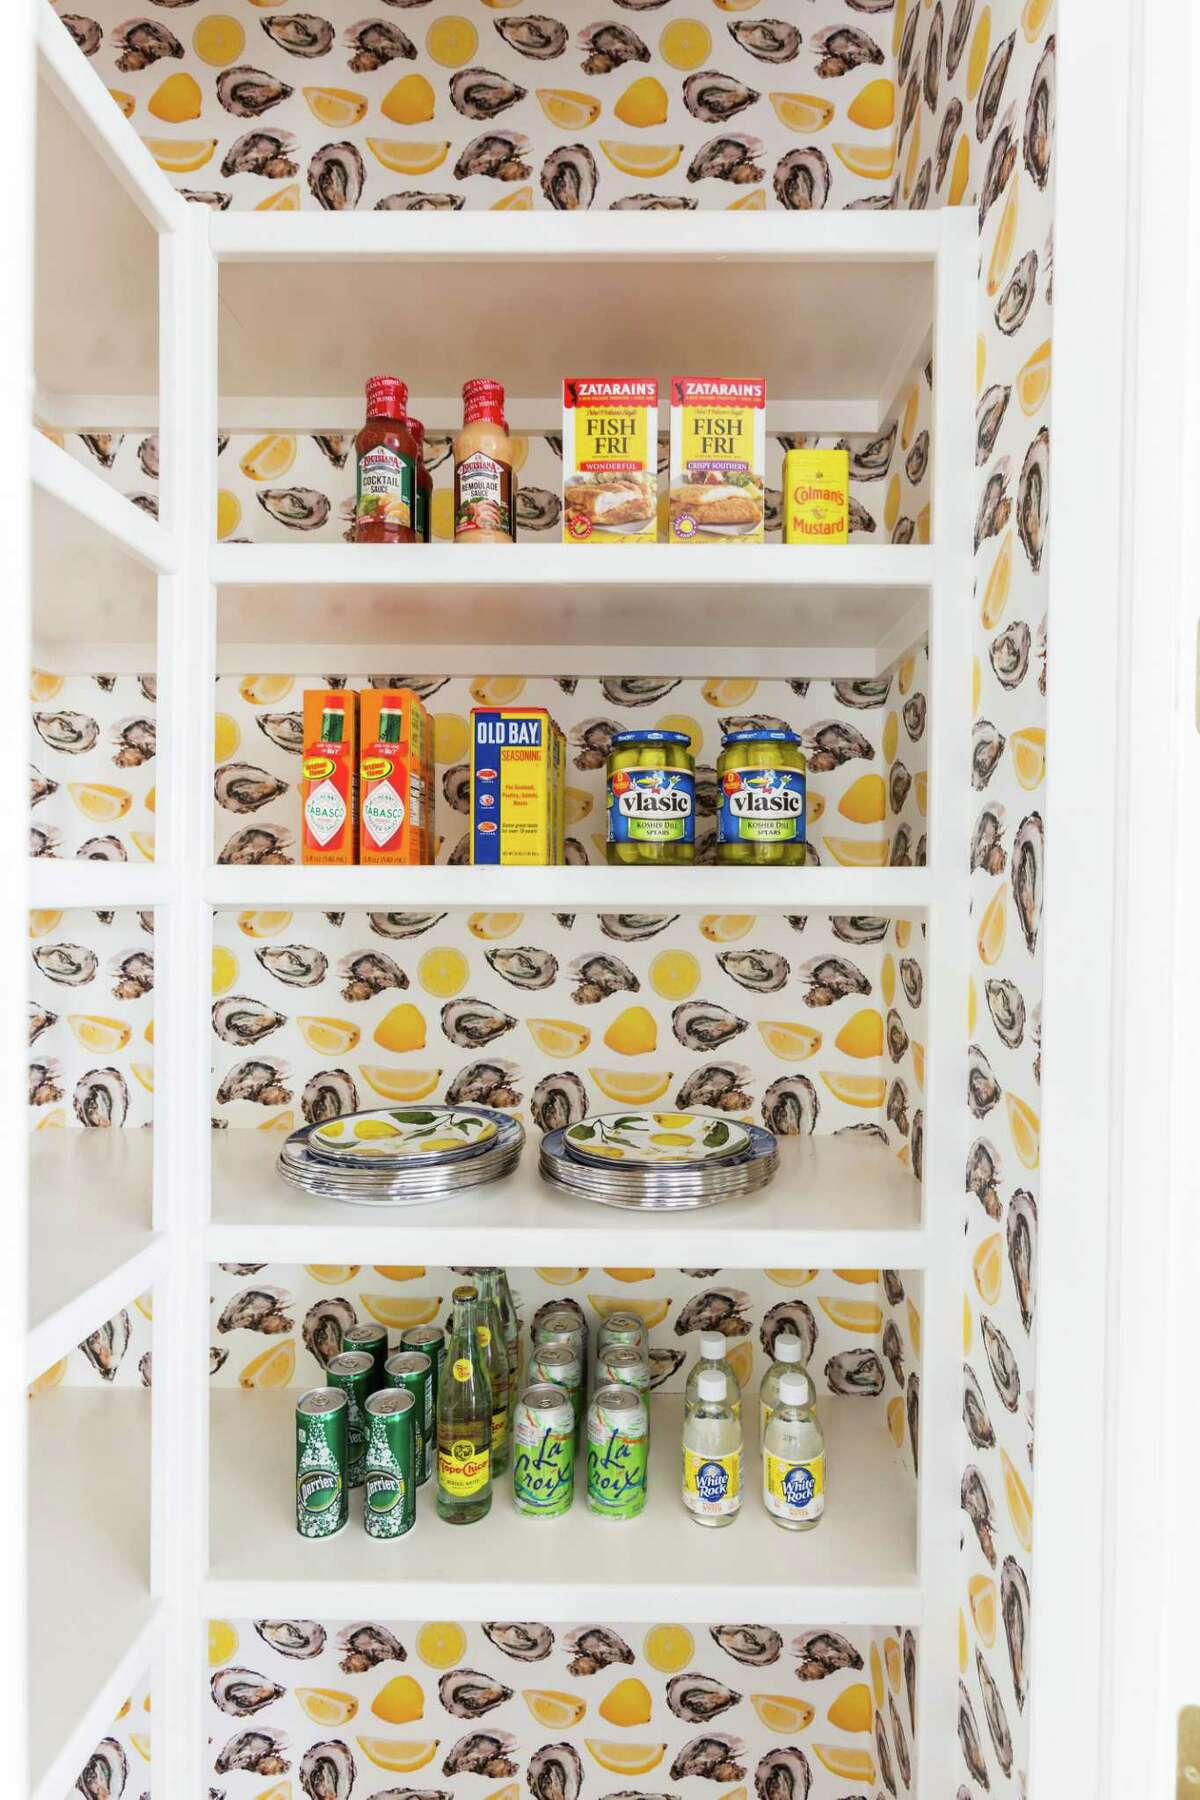 Houston interior designer Courtnay Tartt Elias installed this whimsical Katie Kime wallpaper of oysters and lemon wedges in the kitchen pantry of a client's home.